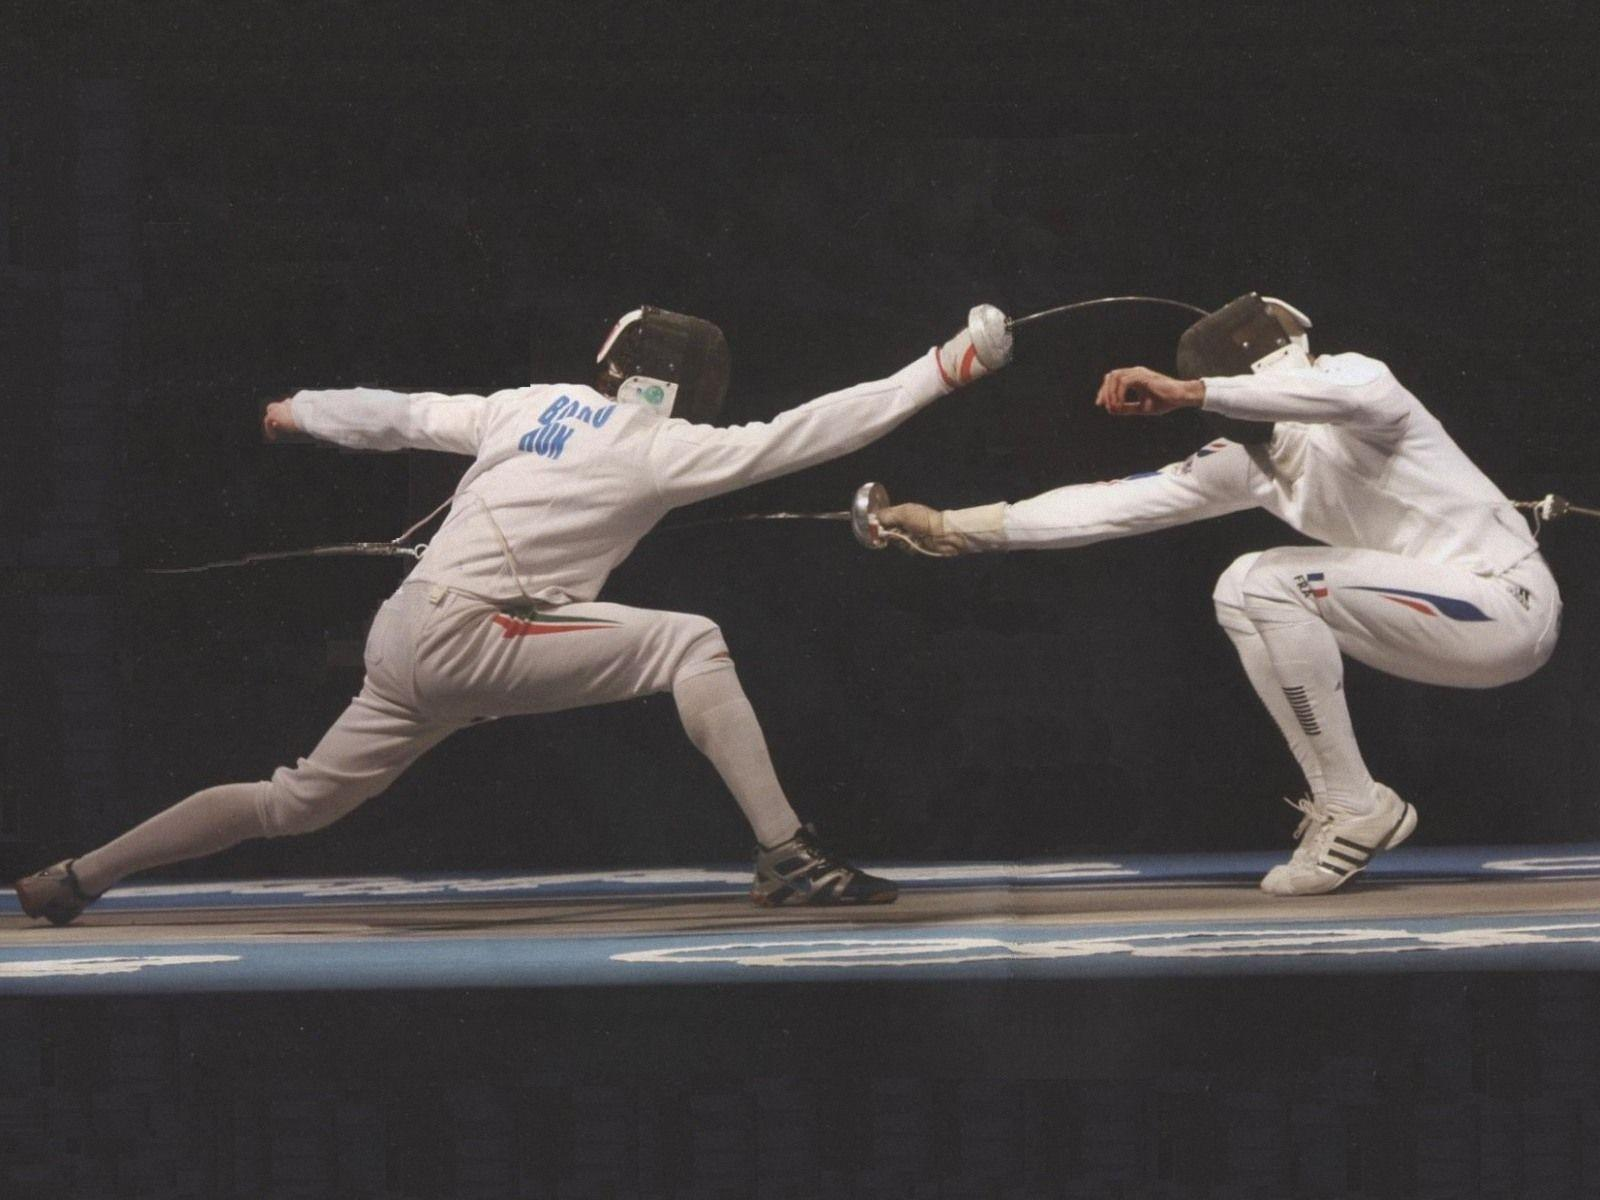 HD Wallpapers Fencing - Fencing escrime | Escrime - Fencing ...